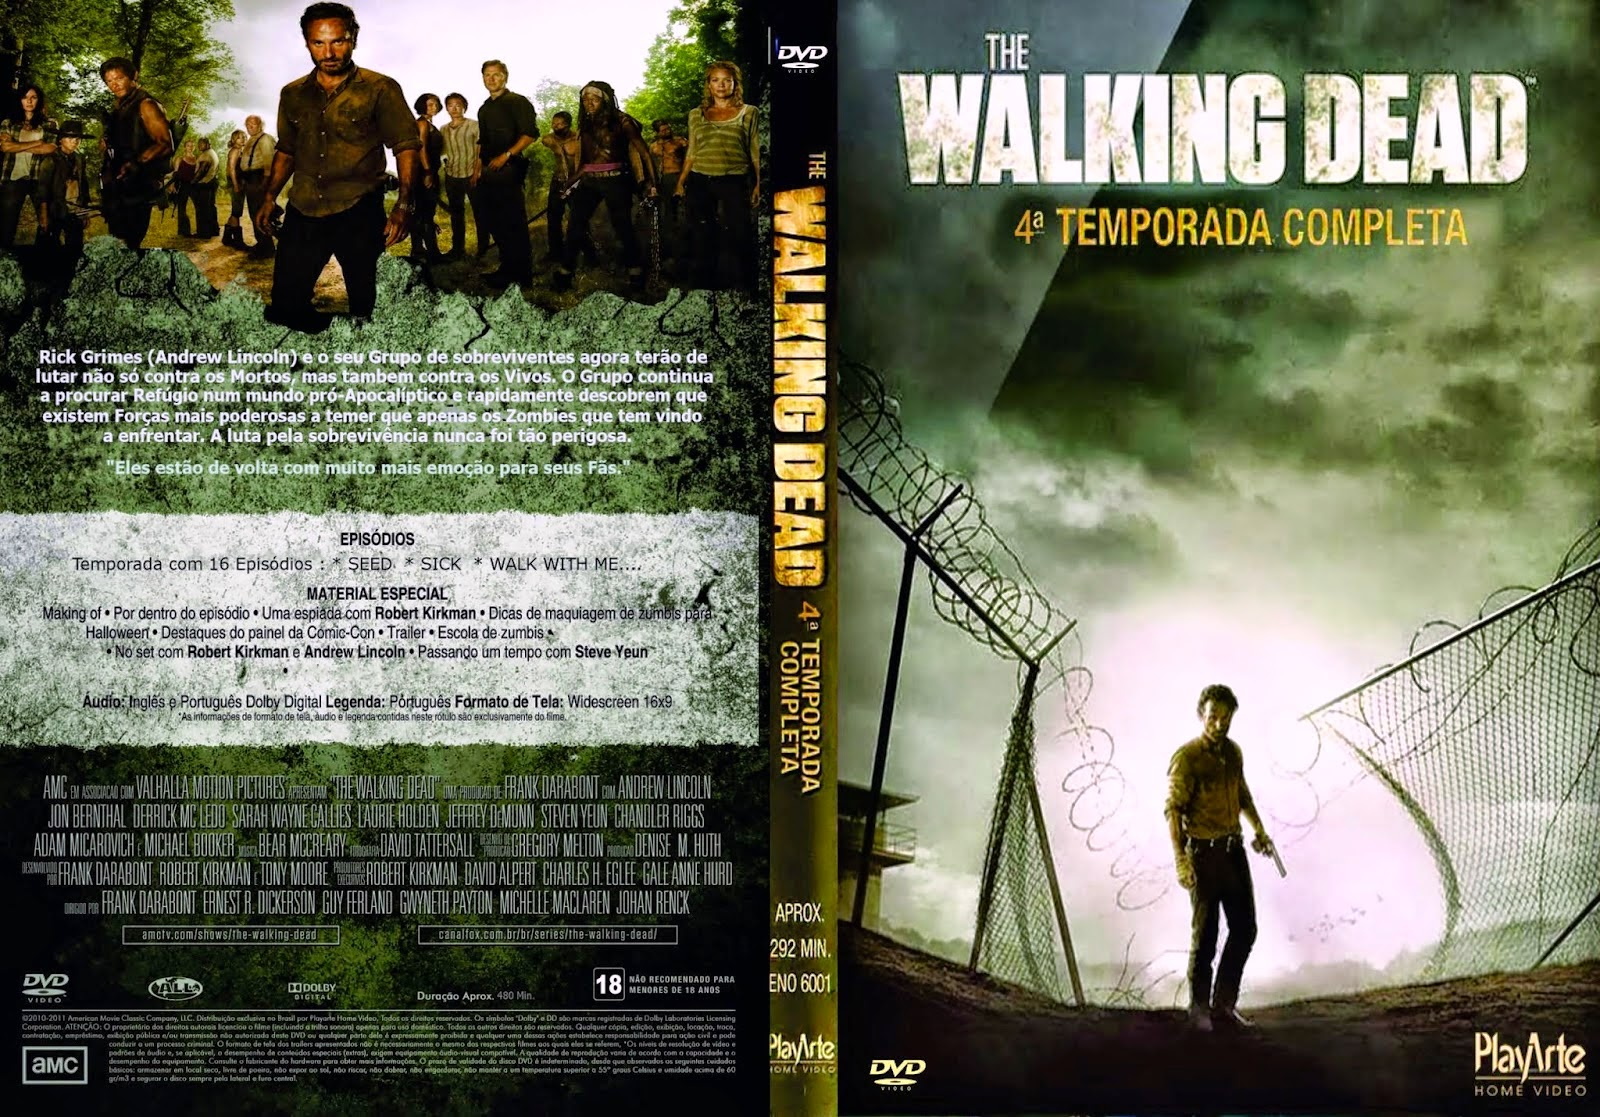 The Walking Dead 4ª Temporada | Gigante das Capas